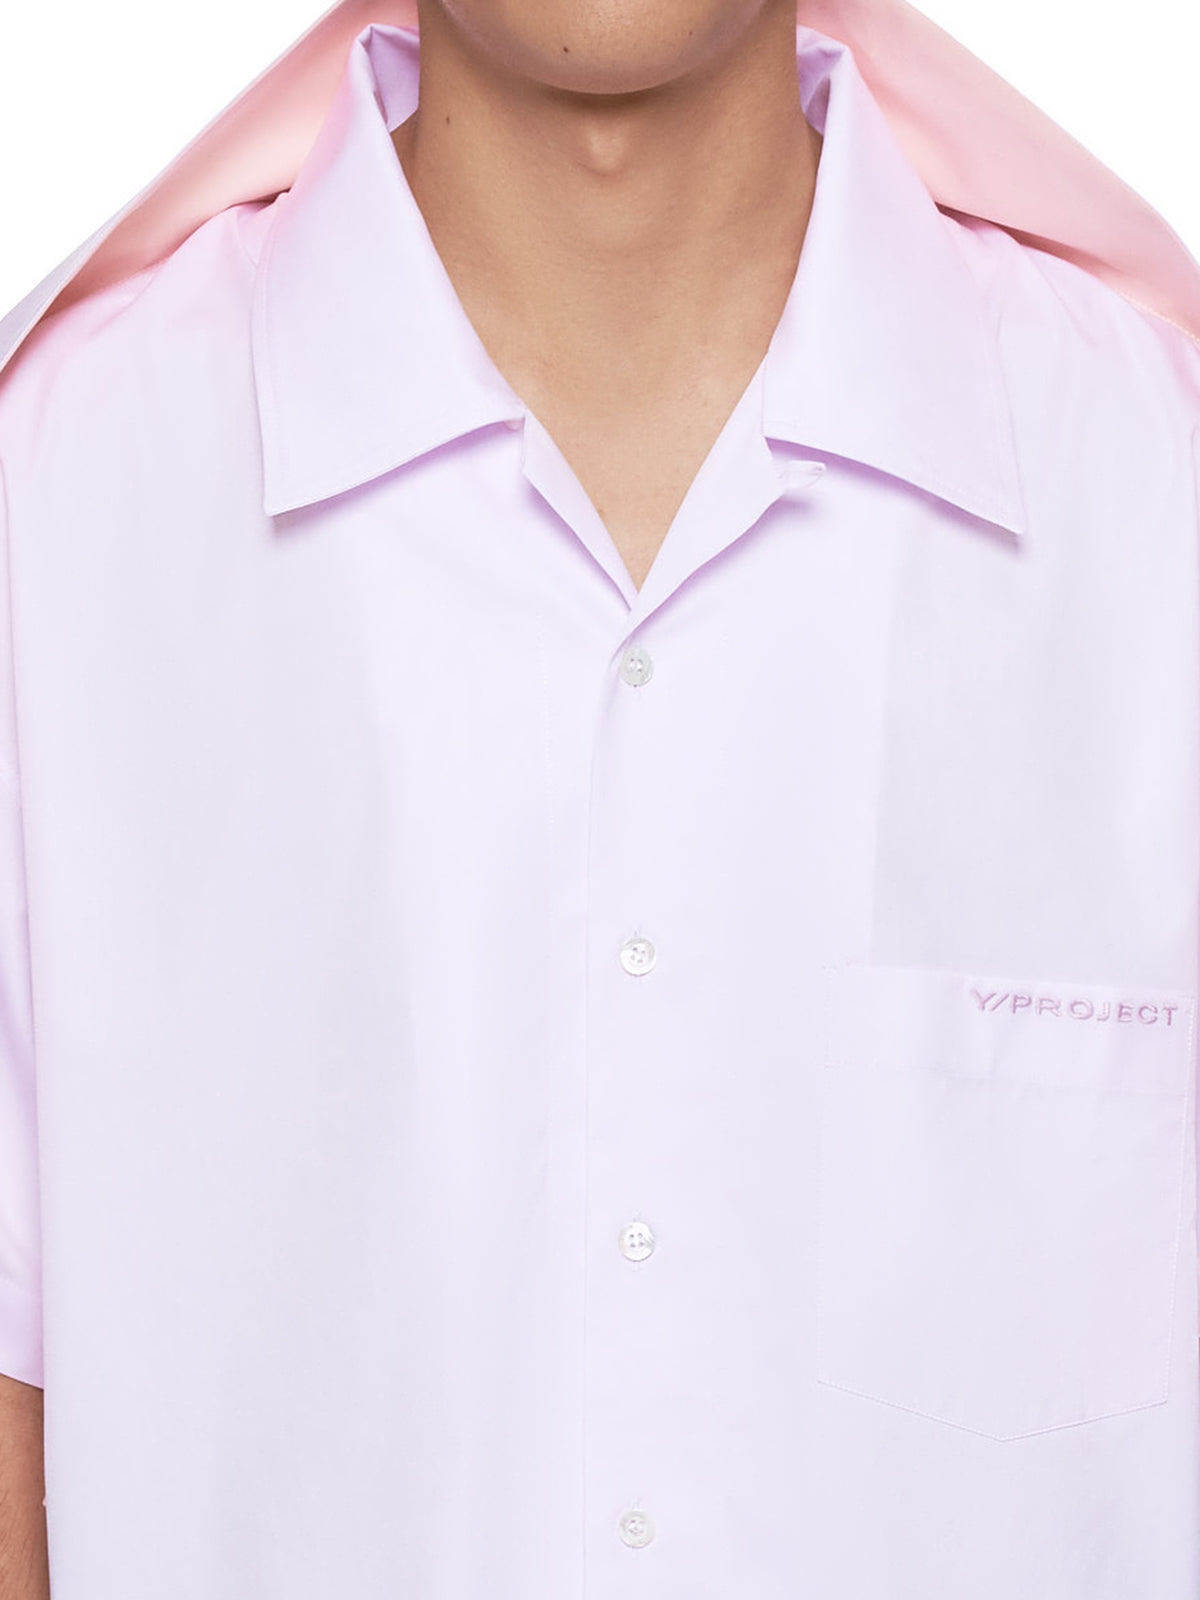 Bowling Shirt (SHIRT23-S16-F138-LIGHT-PINK)